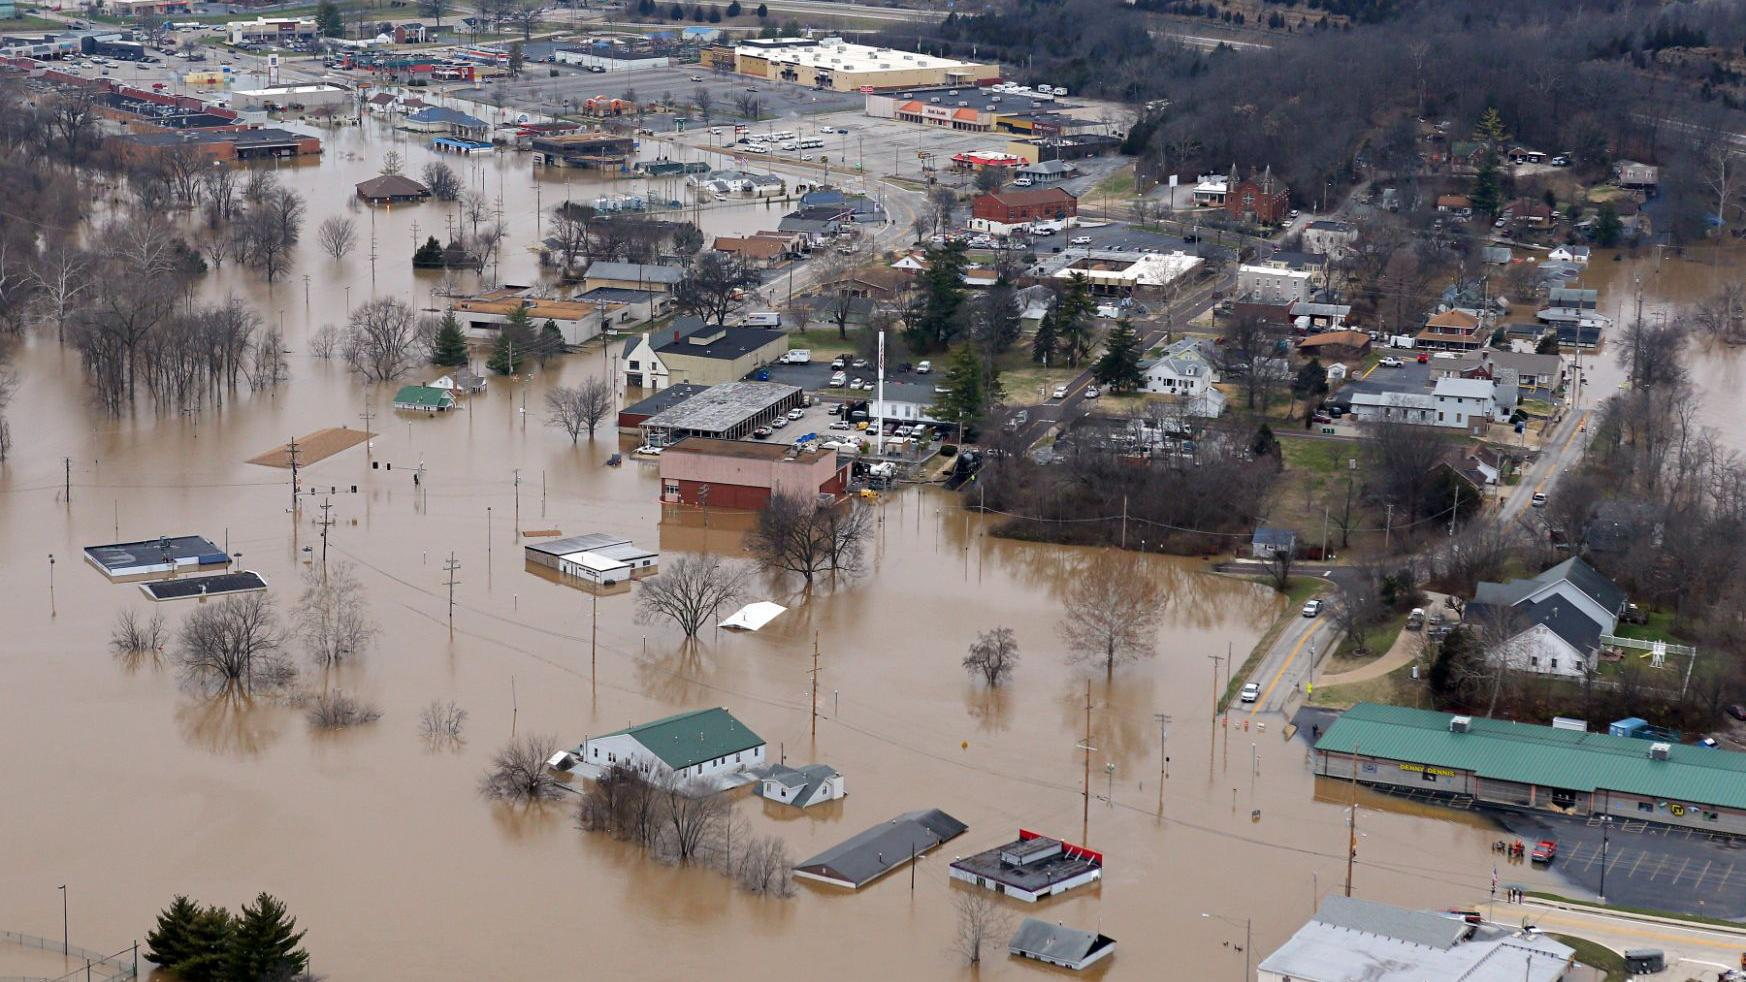 The New Year's Eve flood of 2015: Scenes we won't forget